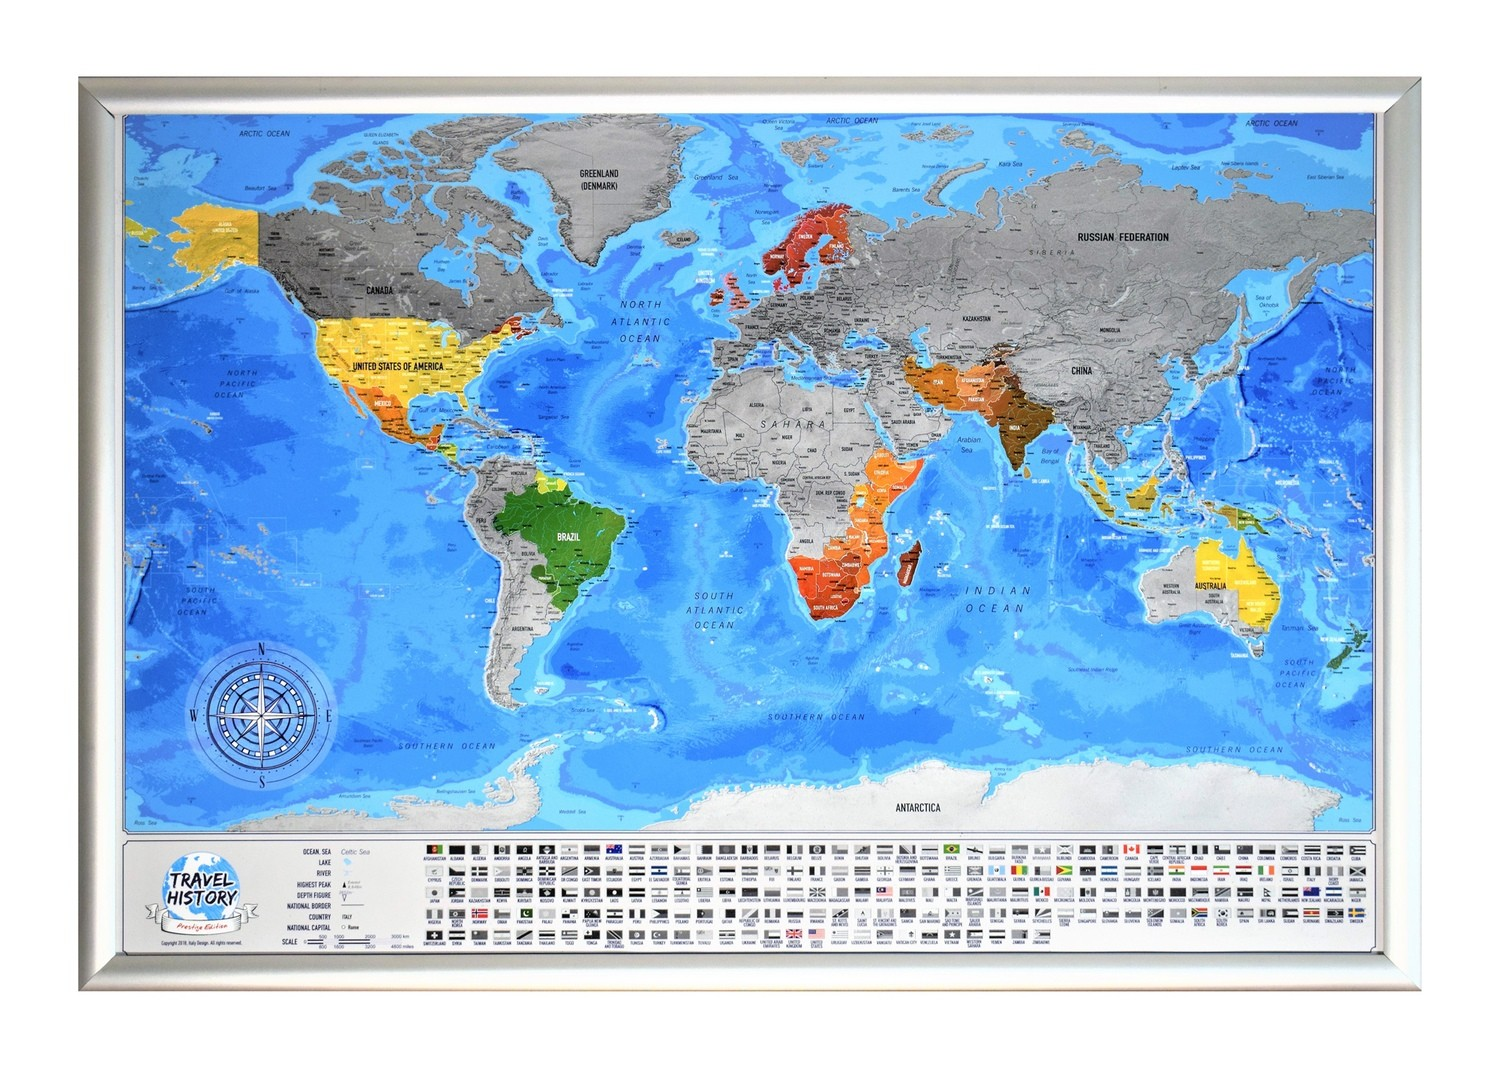 Framed Scratch off World Map with Flags, Best Personalized Gift for Friend, High Quality Product, Made in EU